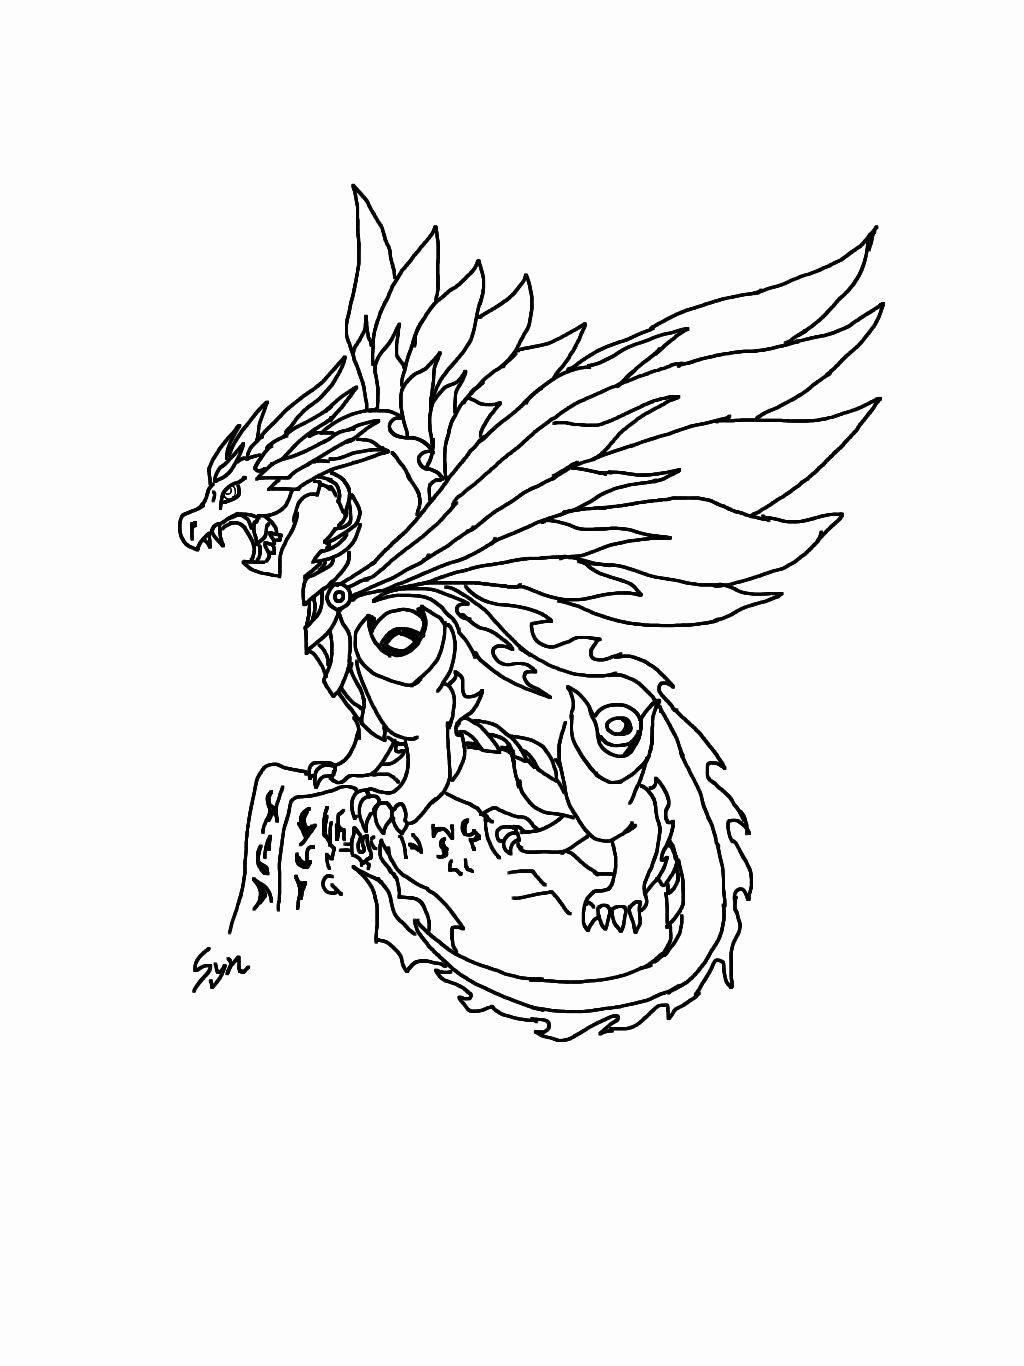 dragon egg coloring pages dragon39s egg line art by pulsedragon coloring pages egg pages dragon coloring